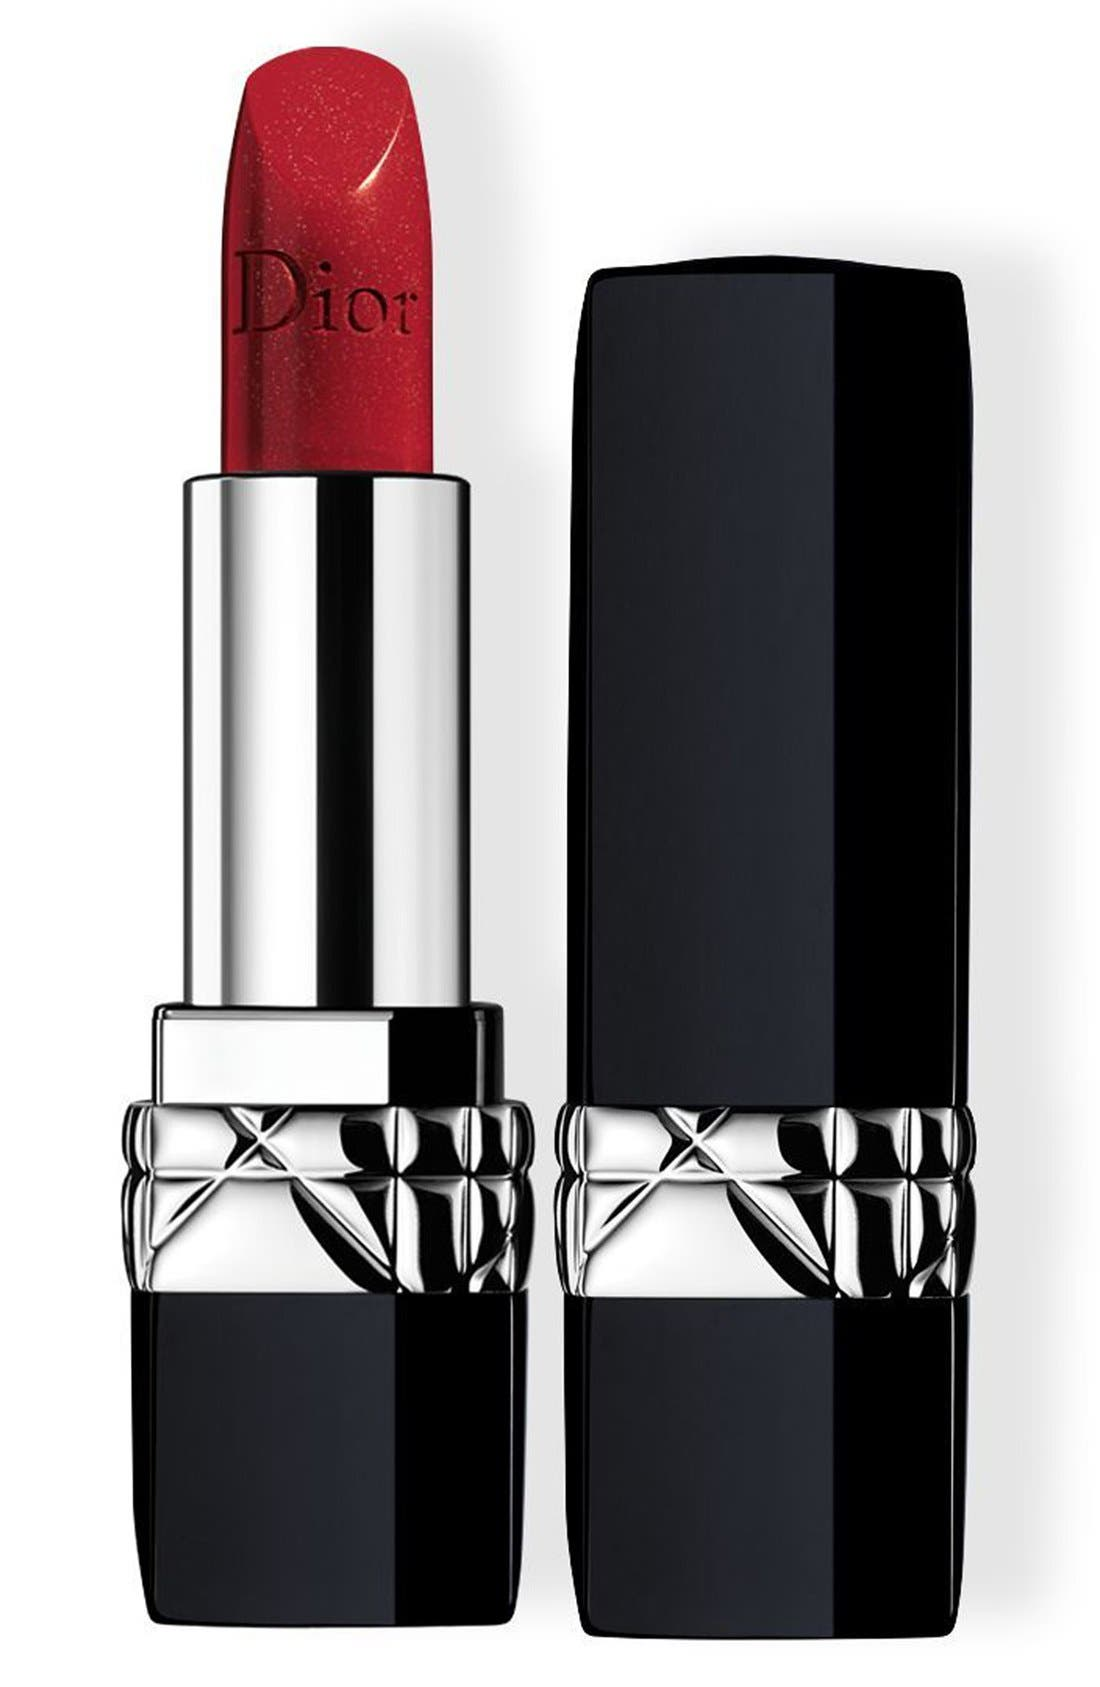 Dior Couture Color Rouge Dior Lipstick - 856 Celebre